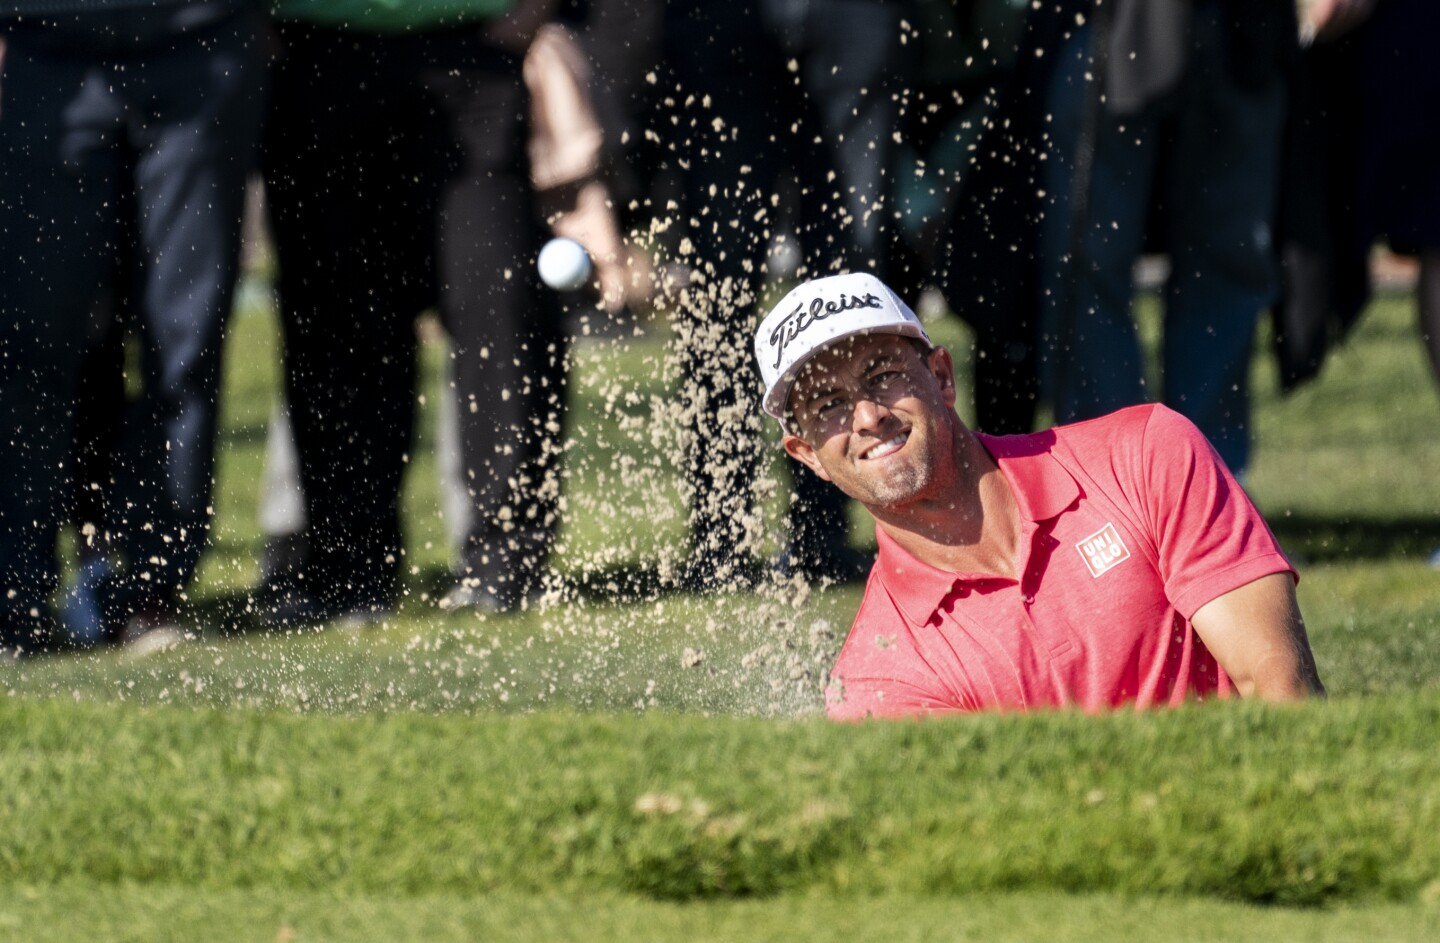 PACIFIC PALISADES, CA - FEBRUARY 16, 2020: Winner Adam Scott blasts out of the sand trap on the 15th hole in the finals of the Genesis Open at Riviera Country Club on February 16, 2020 in Pacific Palisades, California.(Gina Ferazzi/Los AngelesTimes)